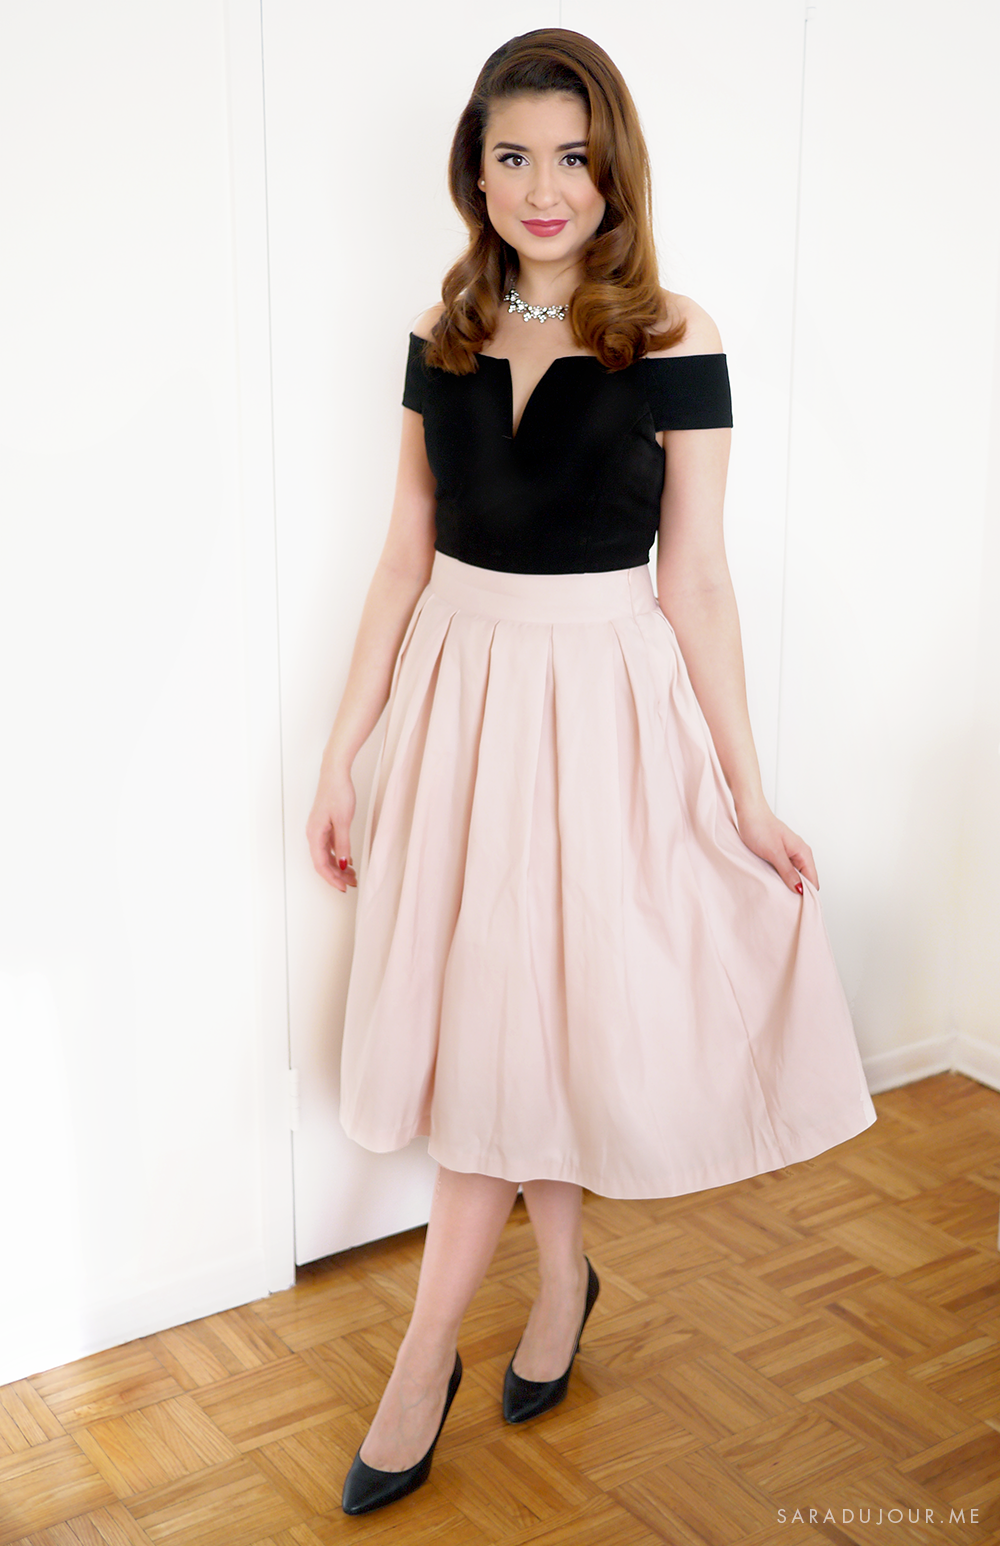 Retro 1950s Christmas Party Outfit u2022 Sara du Jour